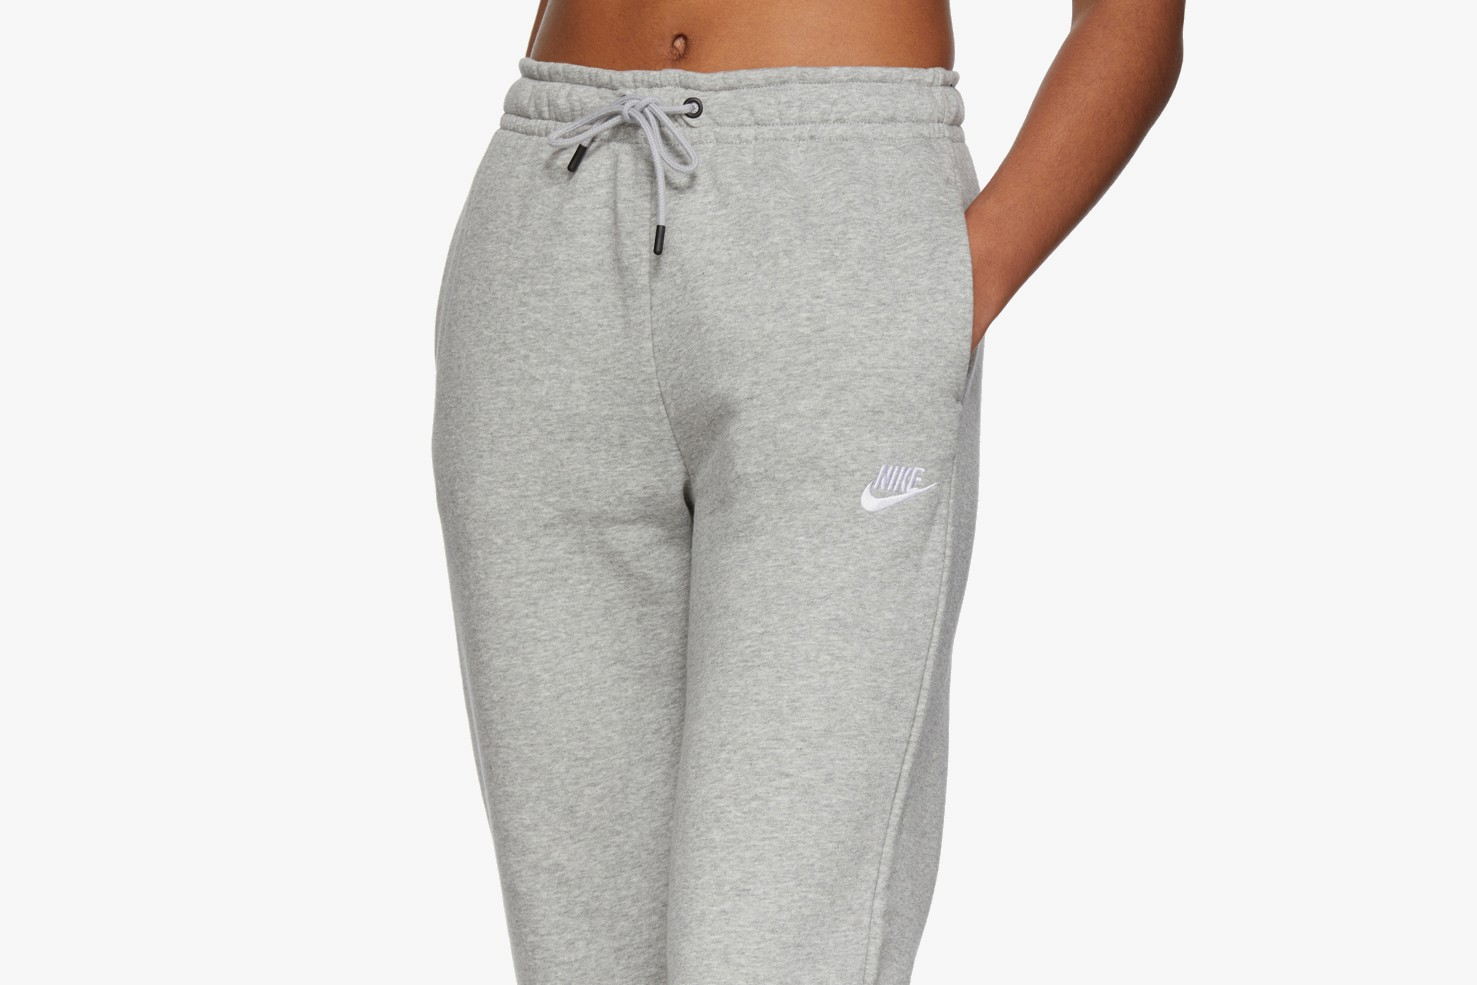 sweatsuit sweater sweatpants grey nike logo swoosh socks sofa couch leather white